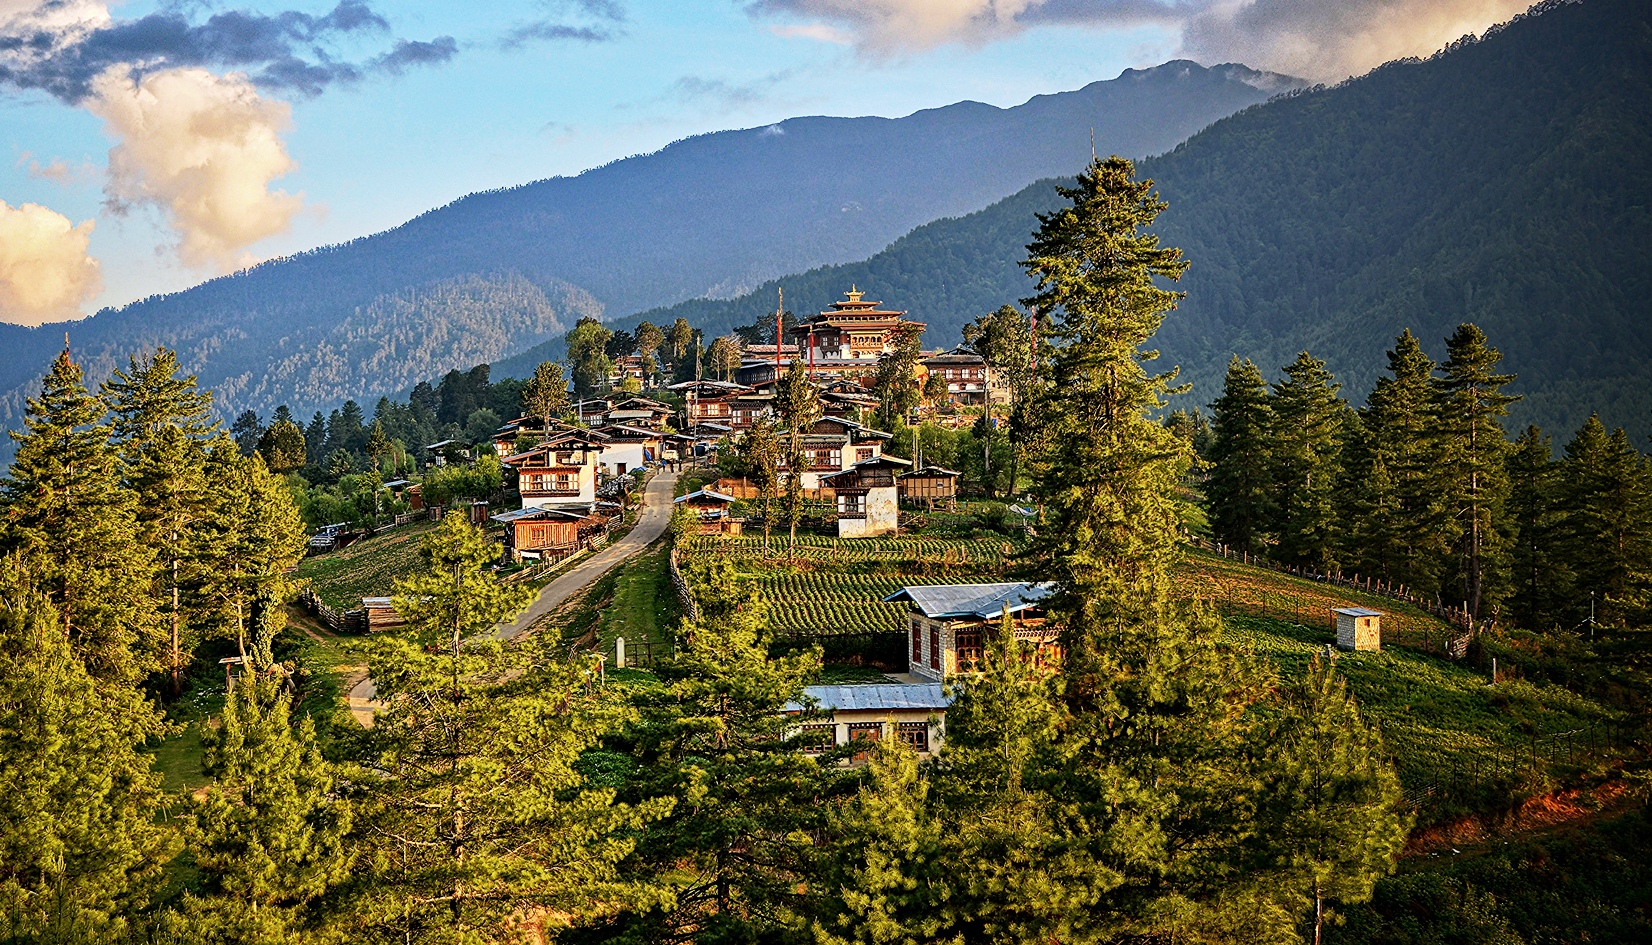 bhutan-tour-7-days-gangtey